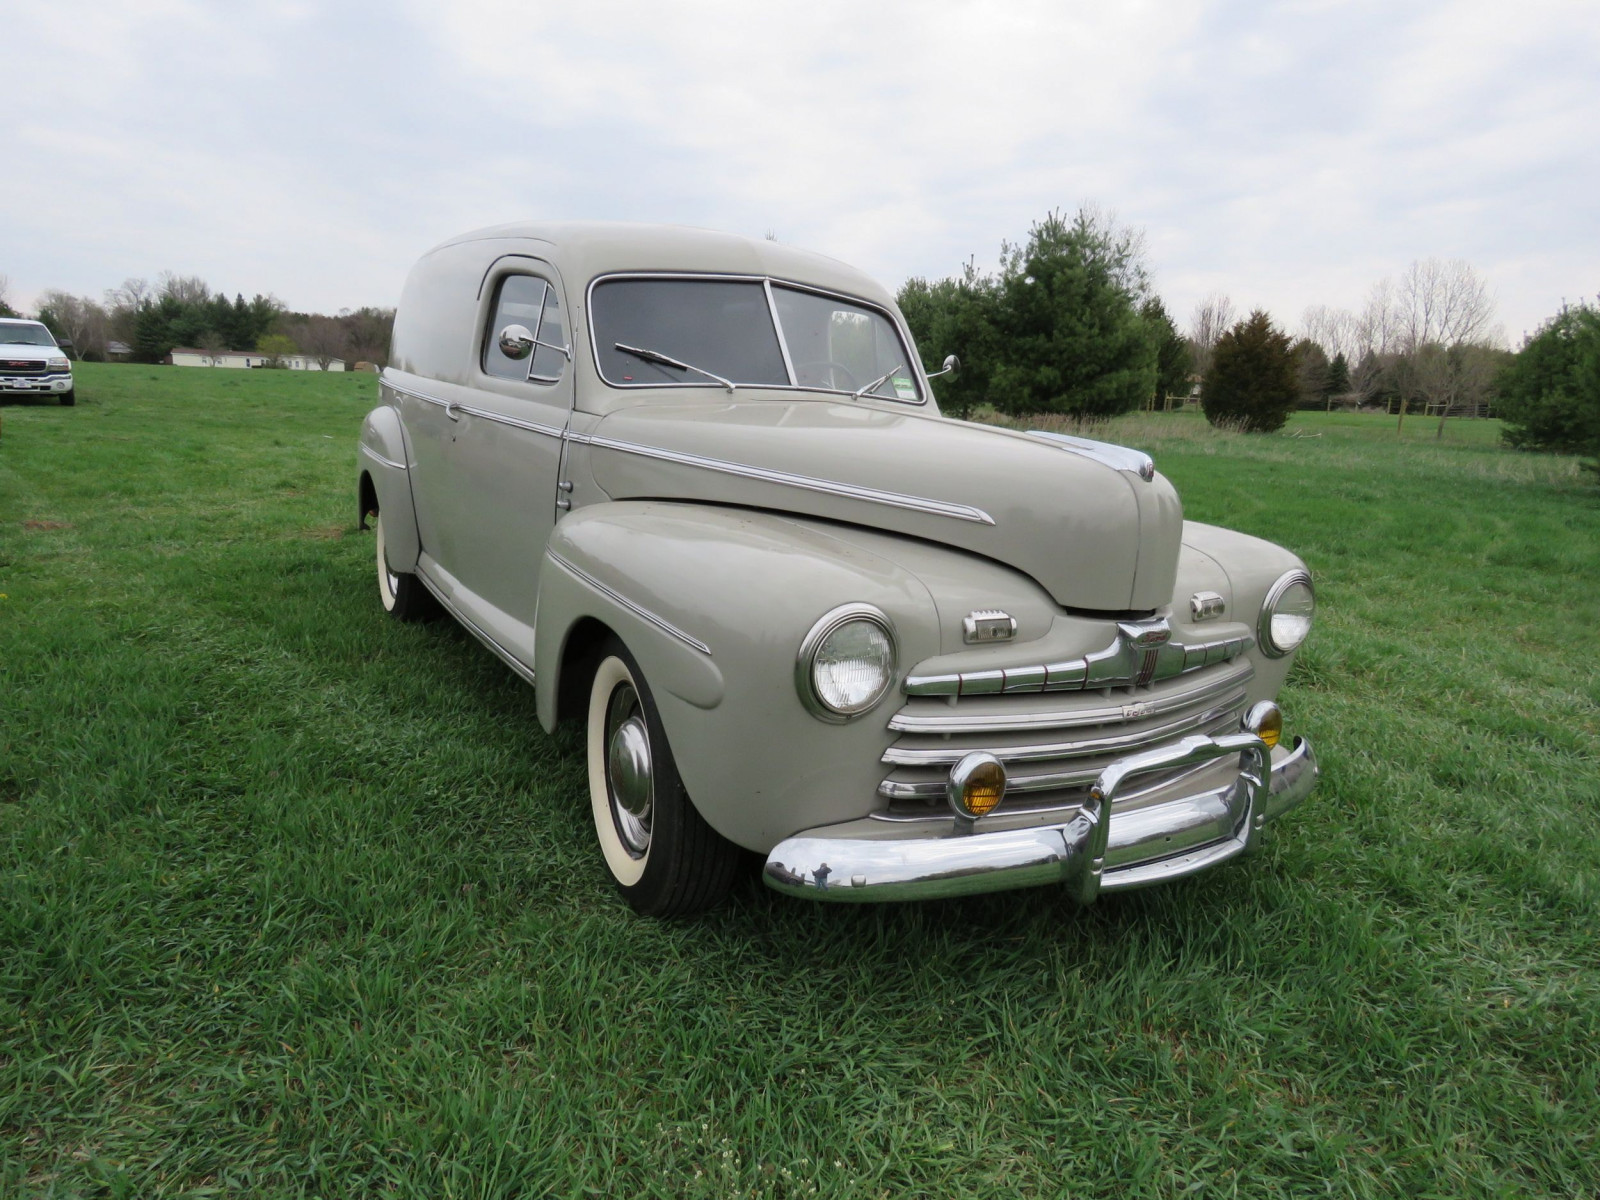 1946 Ford Sedan Delivery - Image 1